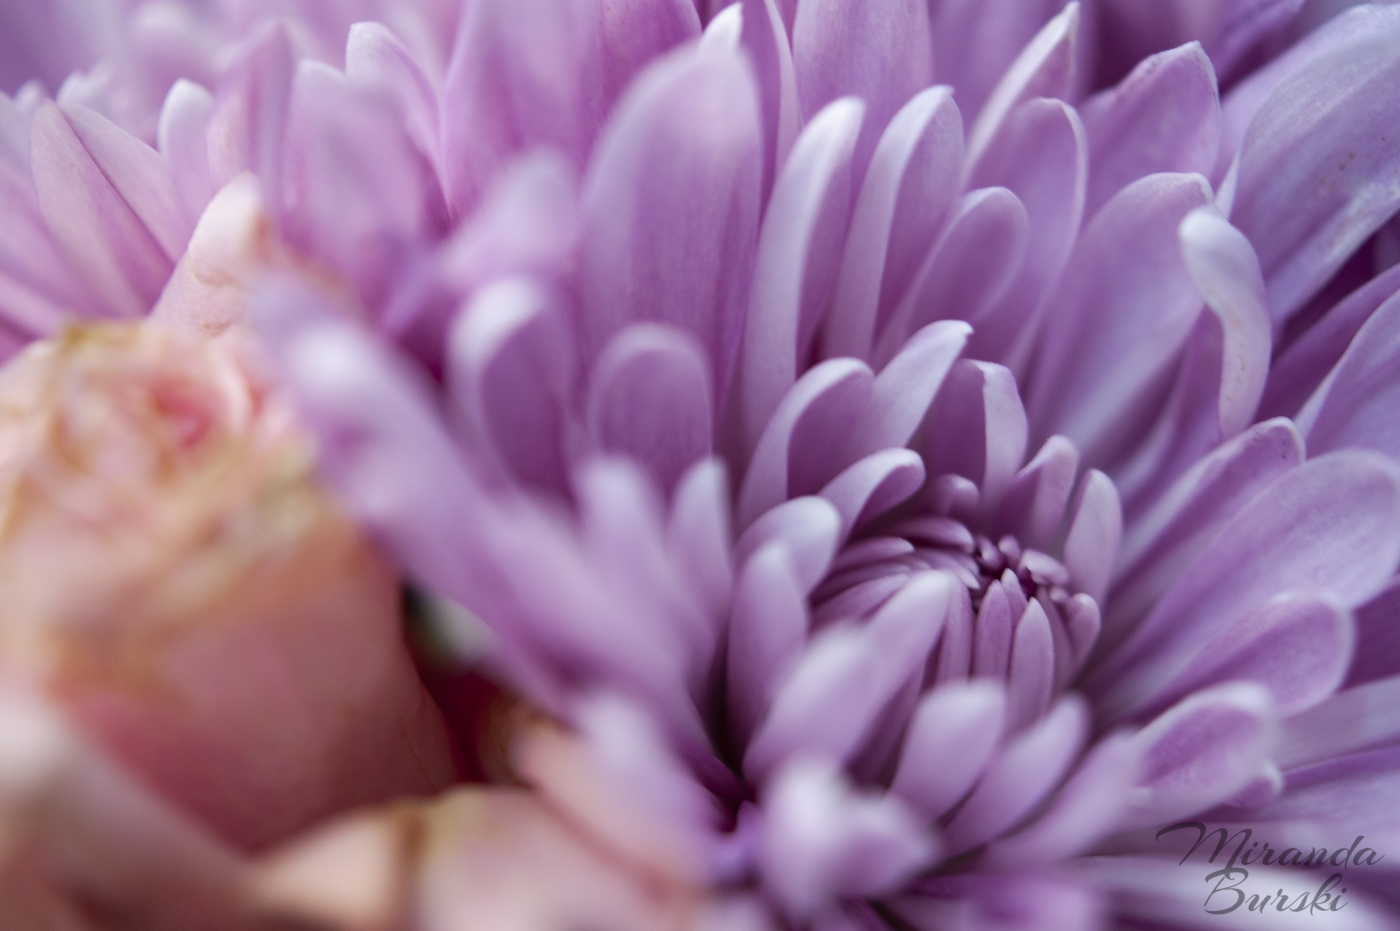 A close-up of purple and pink flowers.